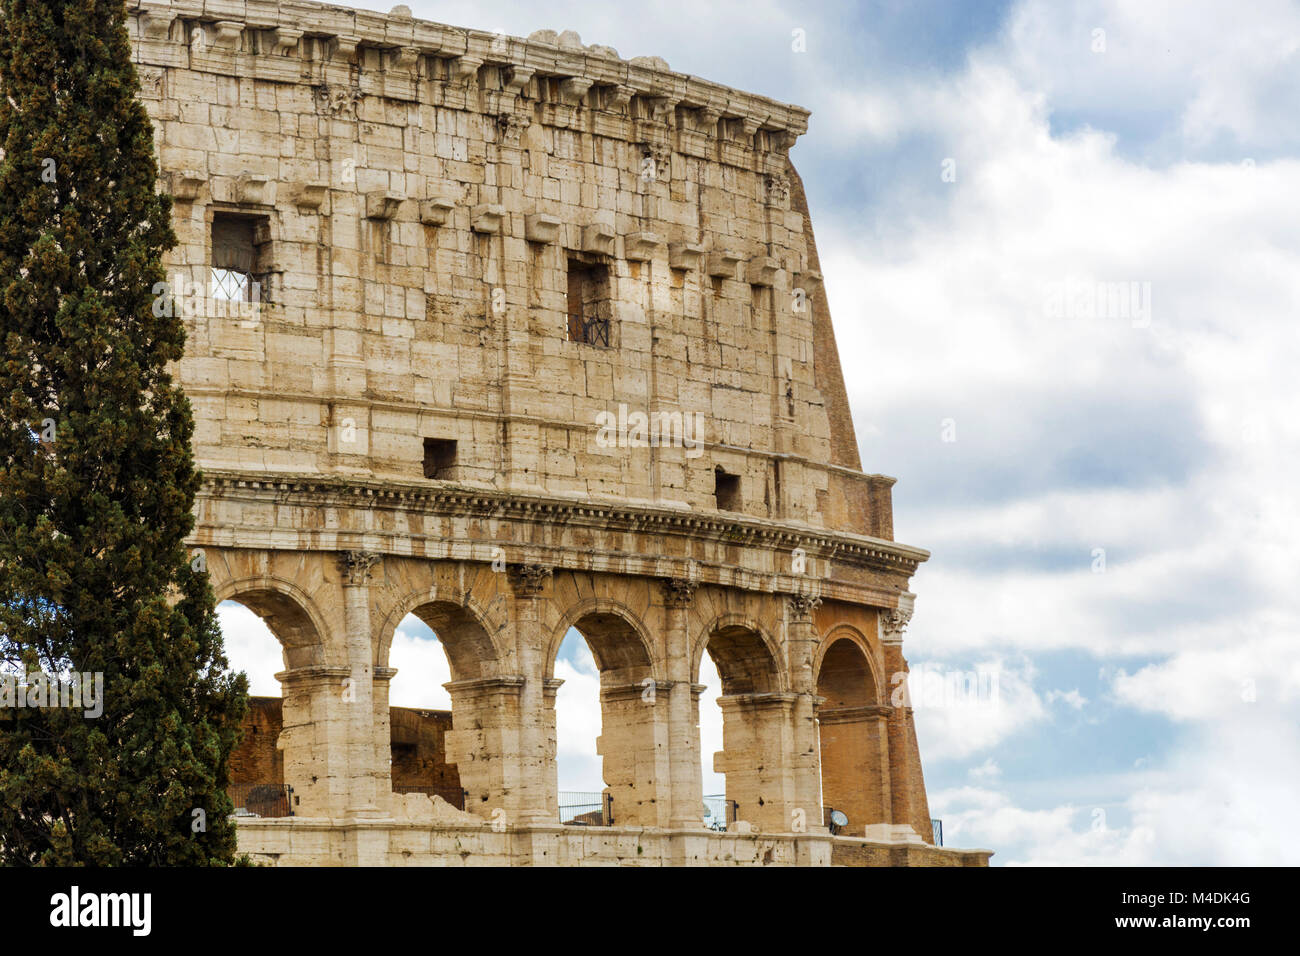 an overview of the iconic fluvian amphitheater or coliseum Though two-thirds of the original colosseum has been destroyed over time, the  amphitheater remains a popular tourist destination, as well as an iconic symbol.